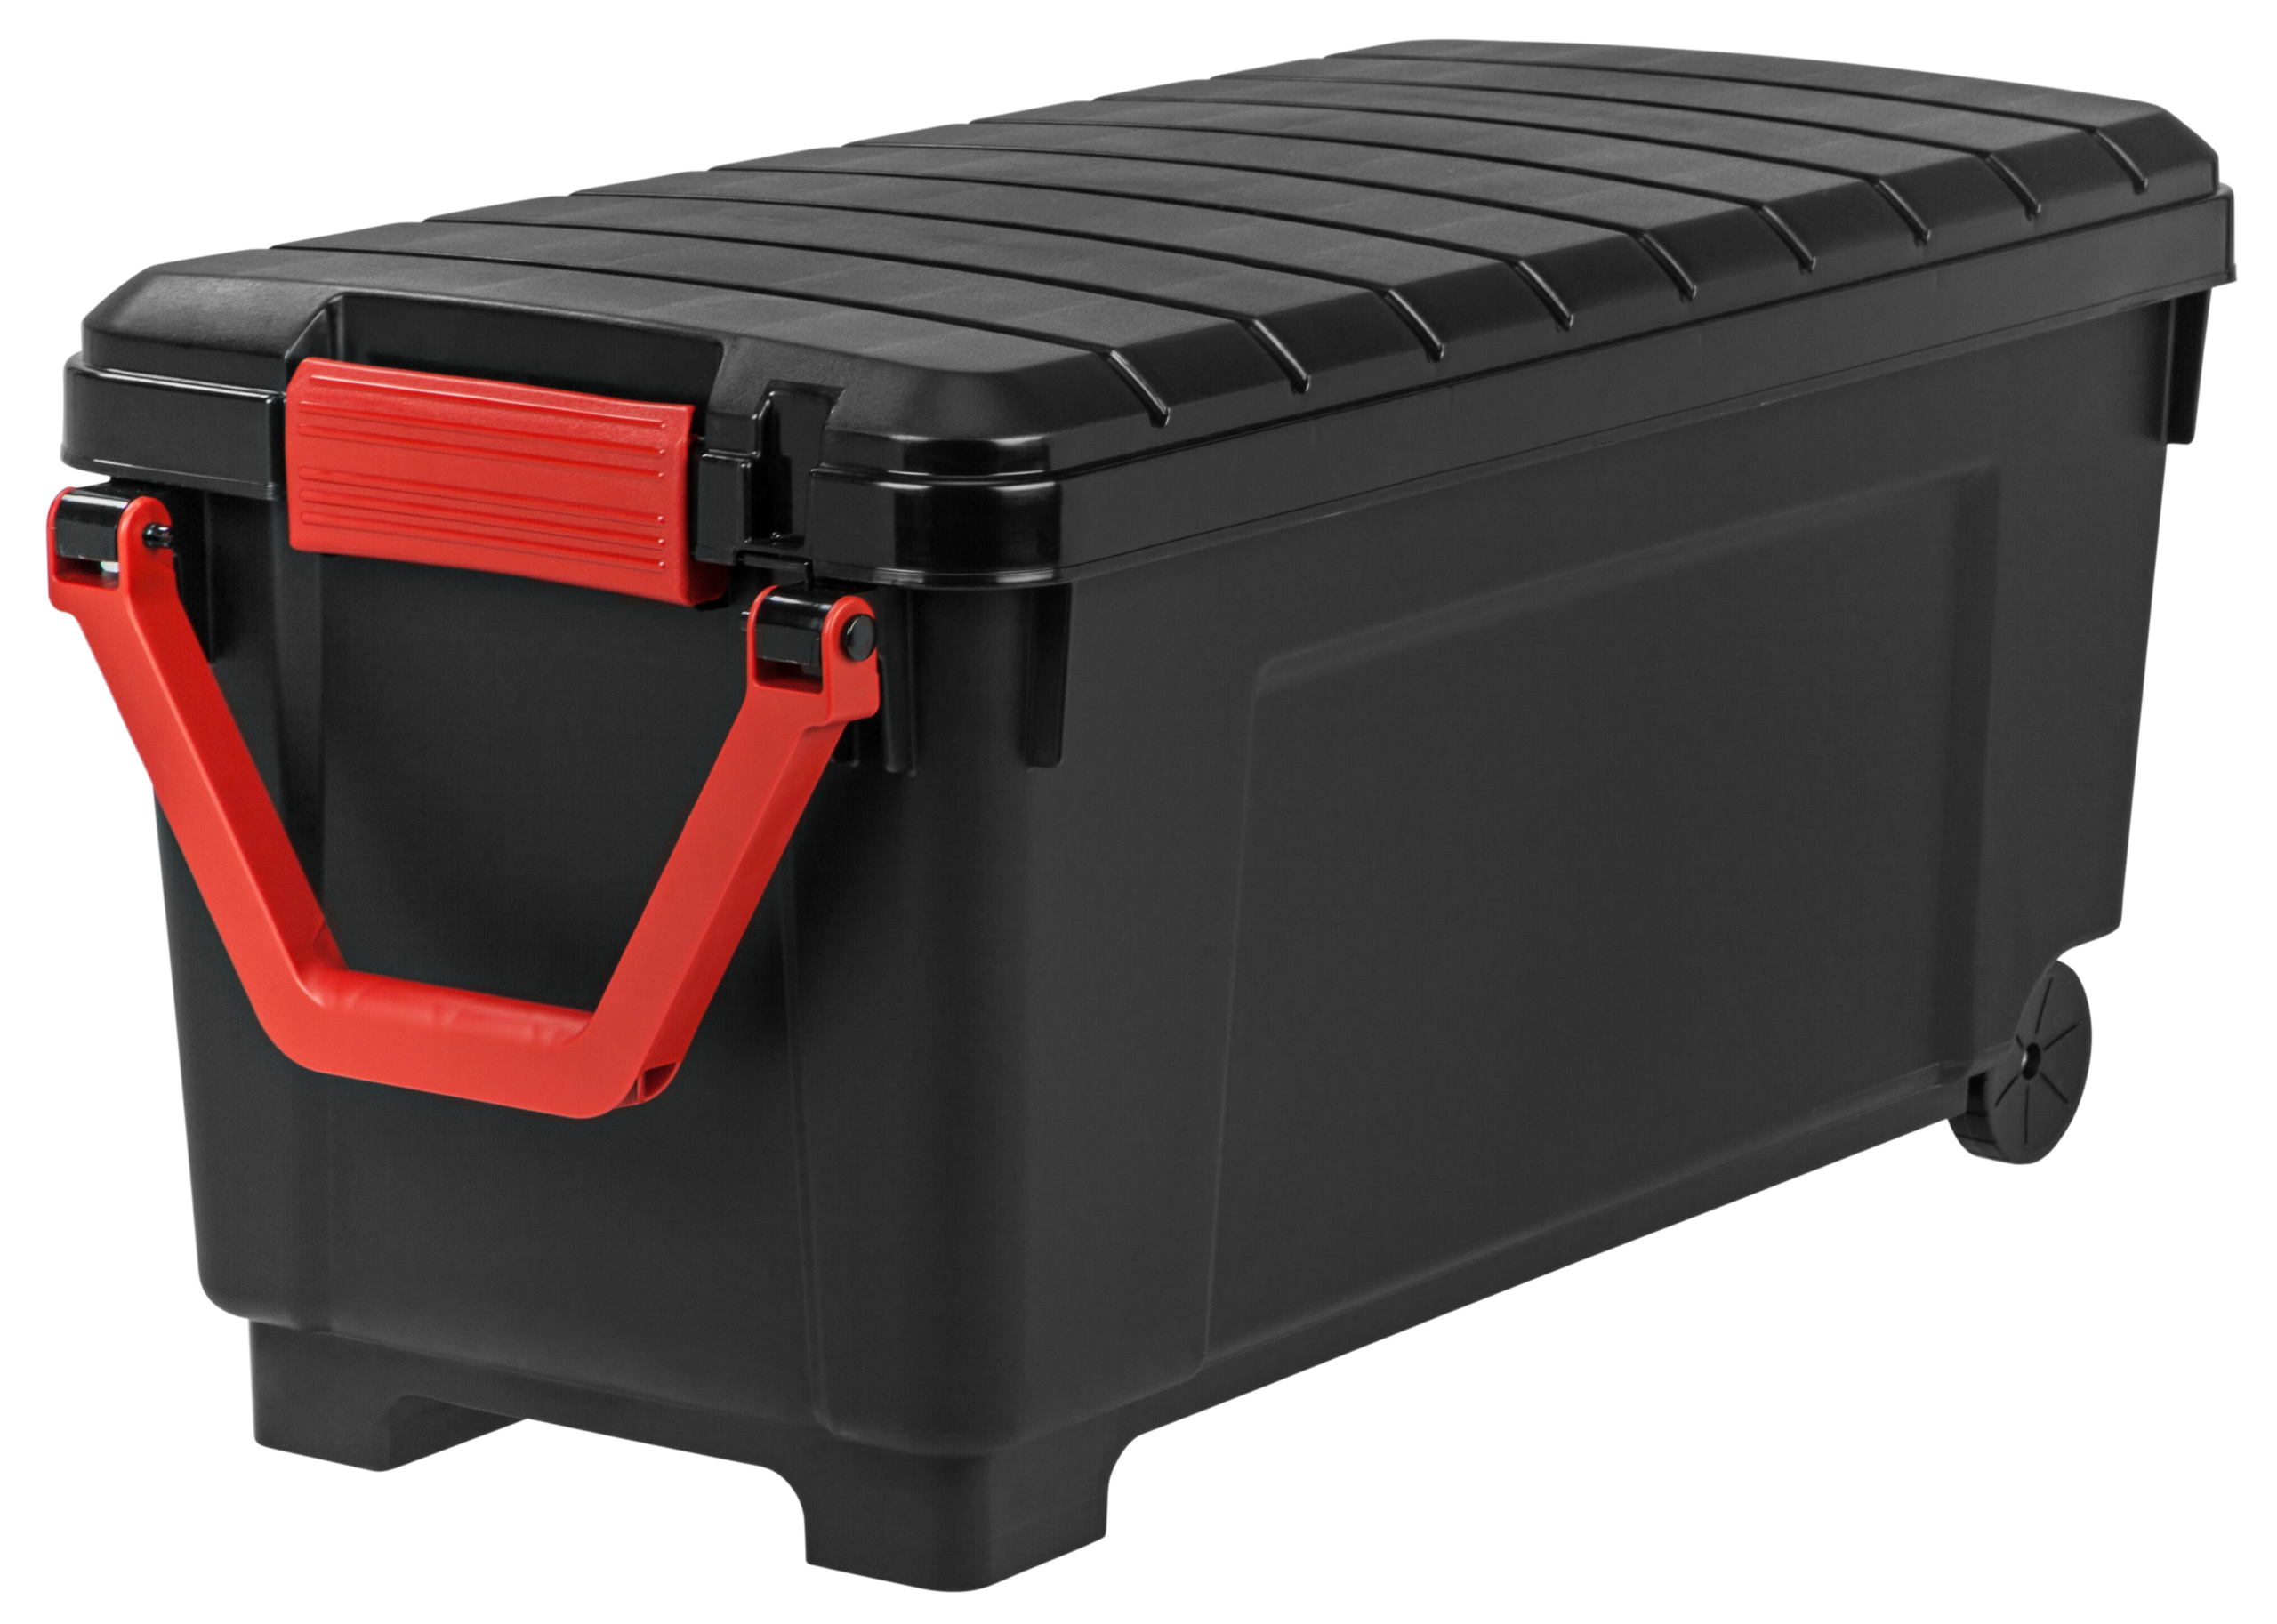 IRIS 42.25 Gallon Storage Trunk with Wheels SIA-1000H (Black/Red)  sc 1 st  Foter & Heavy Duty Trunks - Foter